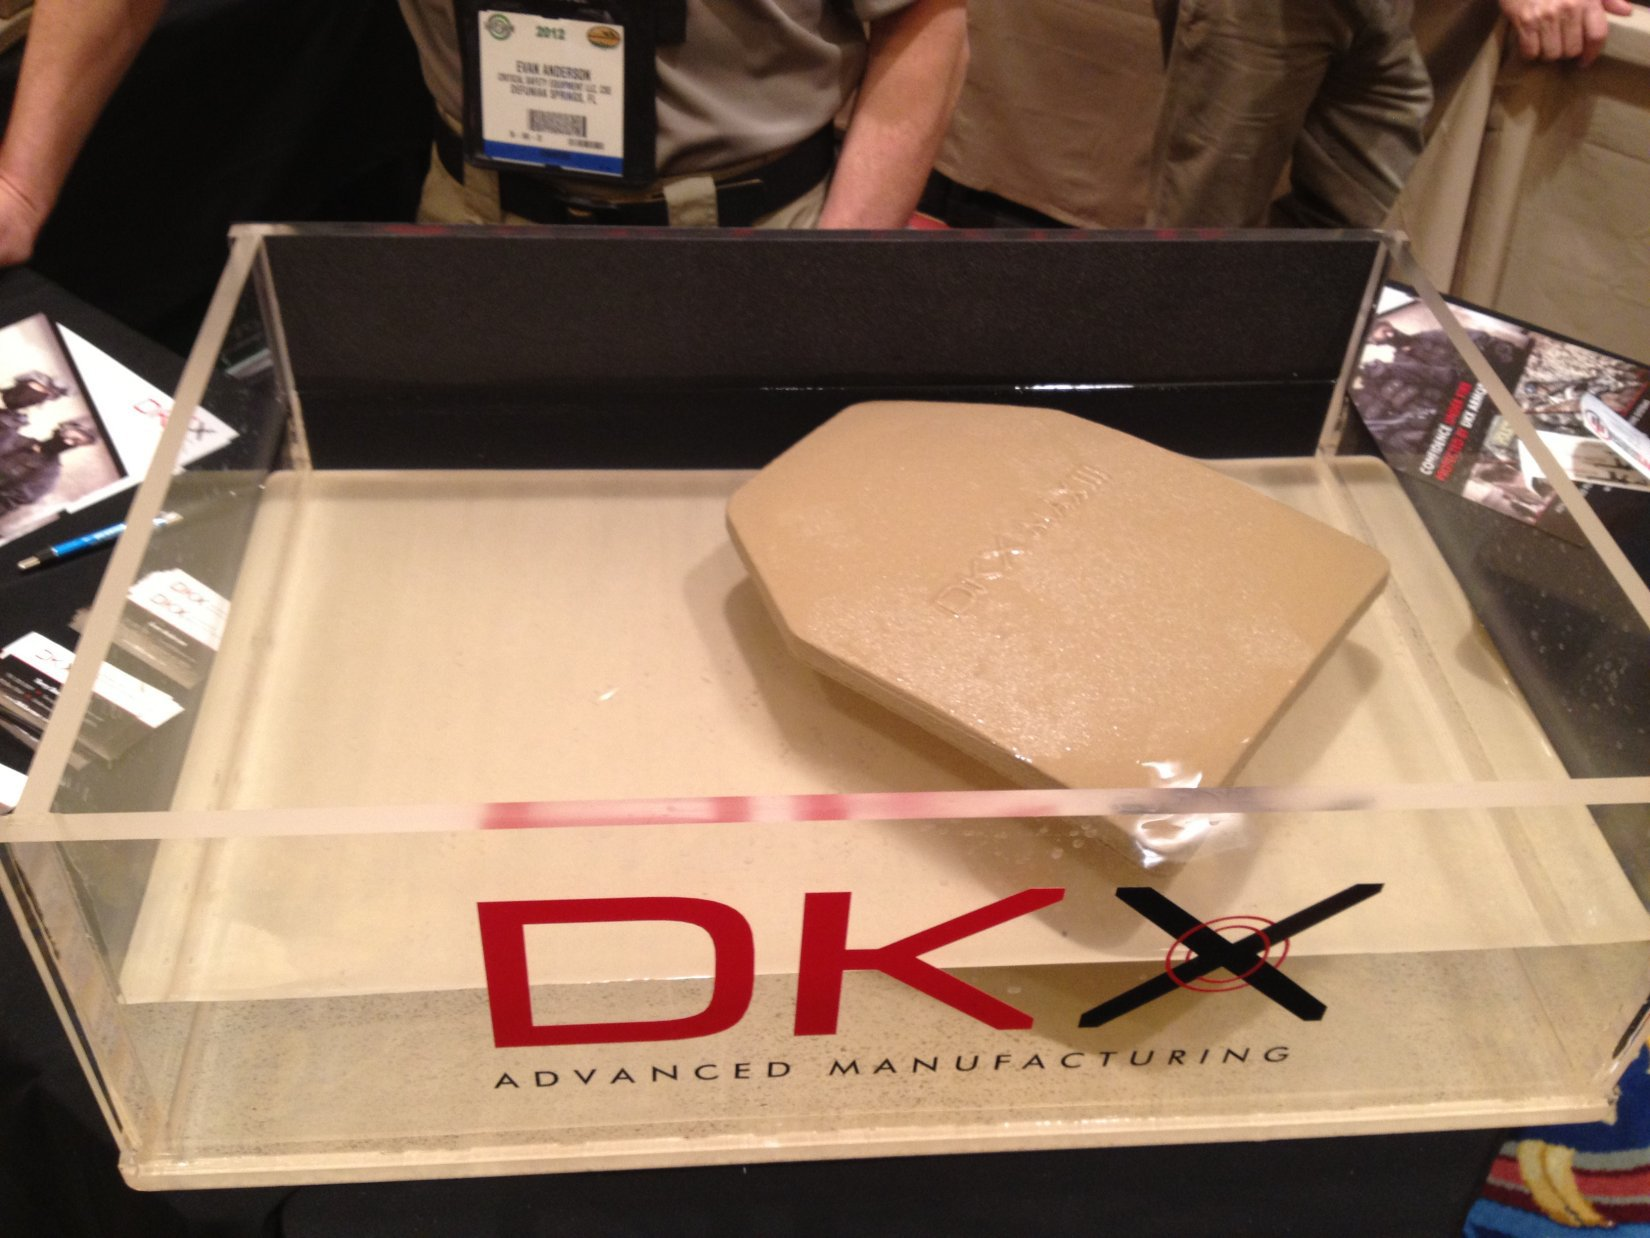 DKX Manufacturing MAX III Multi Hit Drop Resistant Dyneema Floaty Armor Plates 1 DKX MAX III and Developmental MAX IV Lightweight, Multi Hit/Drop Resistant Dyneema Floaty Armor (Floating Armor) Maritime Hard Armor Plates at SHOT Show 2012 (Video!)